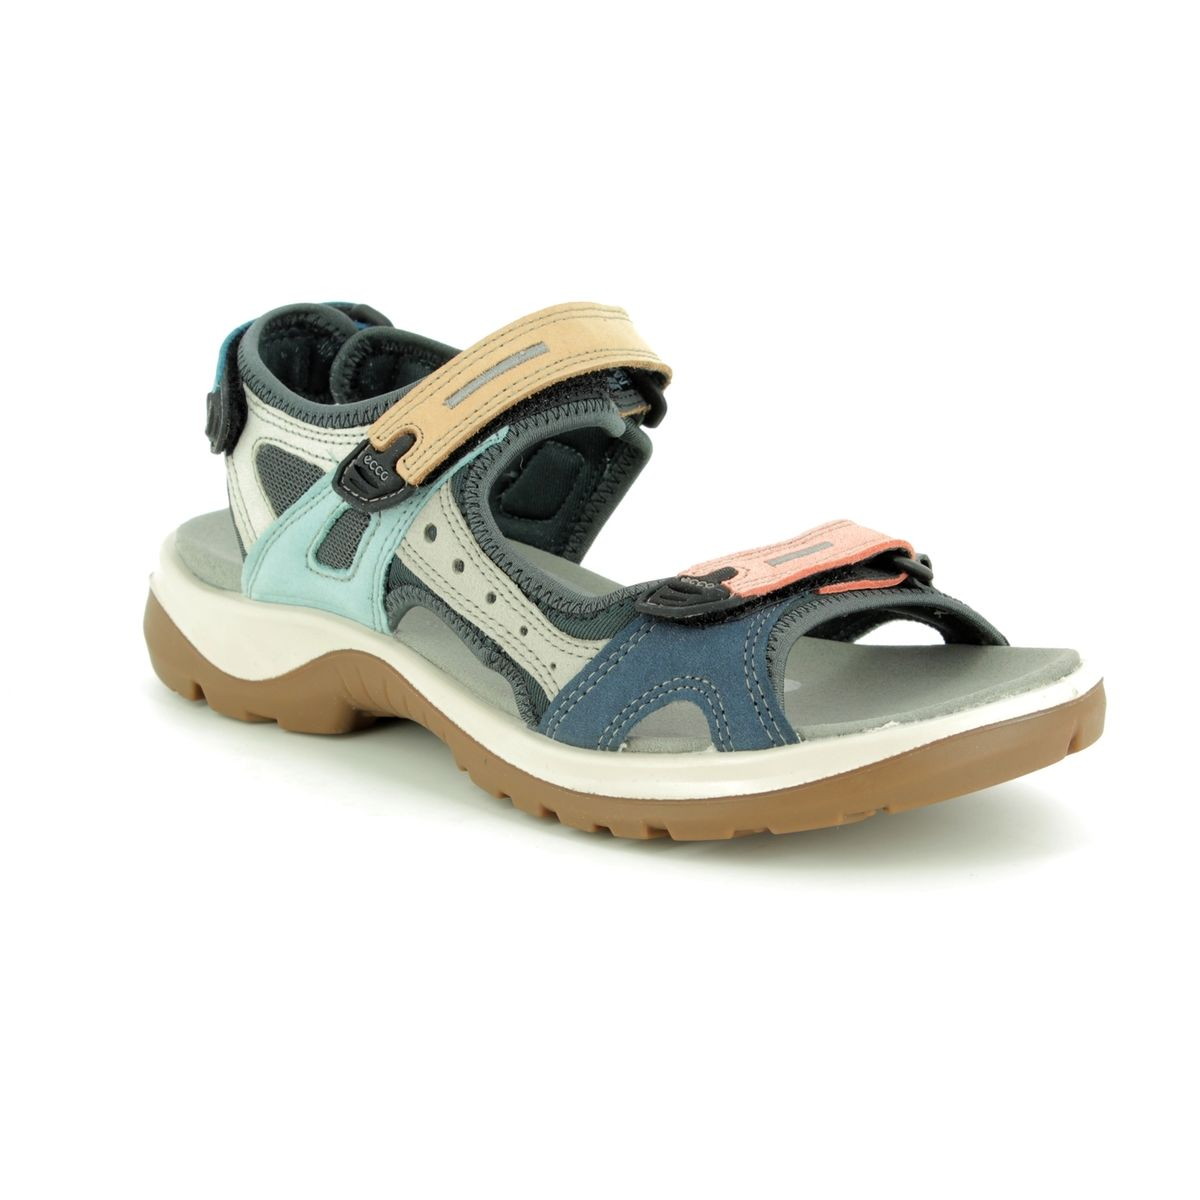 8add4bd138b4 ECCO Walking Sandals - Various - 822083 55749 OFFROAD LADY 2